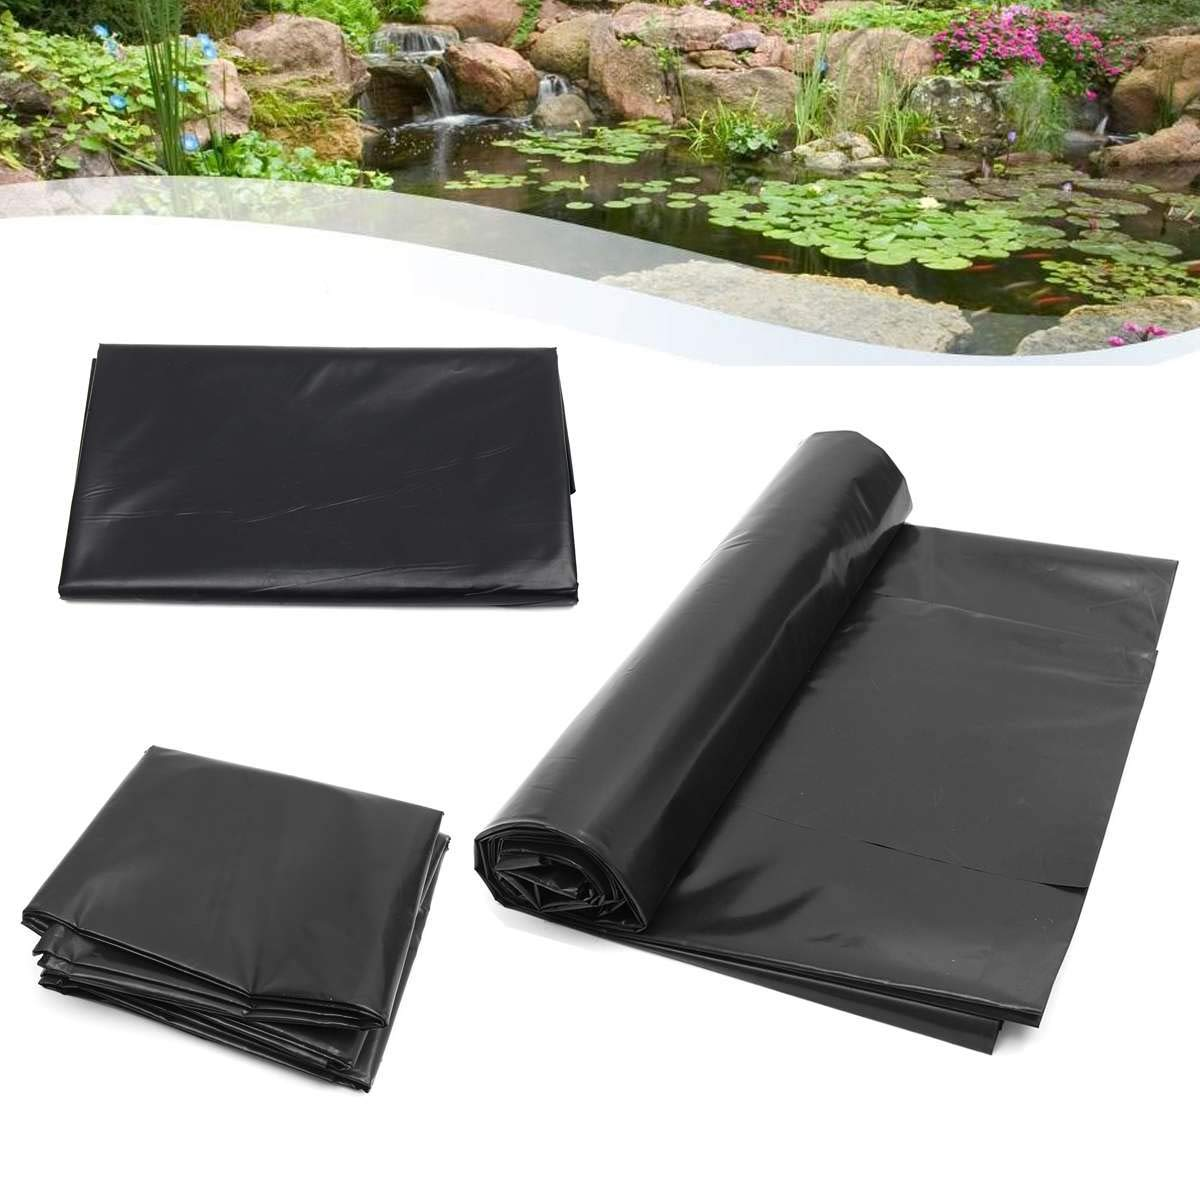 5'x10' HDPE Pond Liner Heavy Landscaping Garden Pool Reinforced Waterproof Pool Liners Cloth Fish Breed Pond Liner Membrane by HOMEFUL STORE